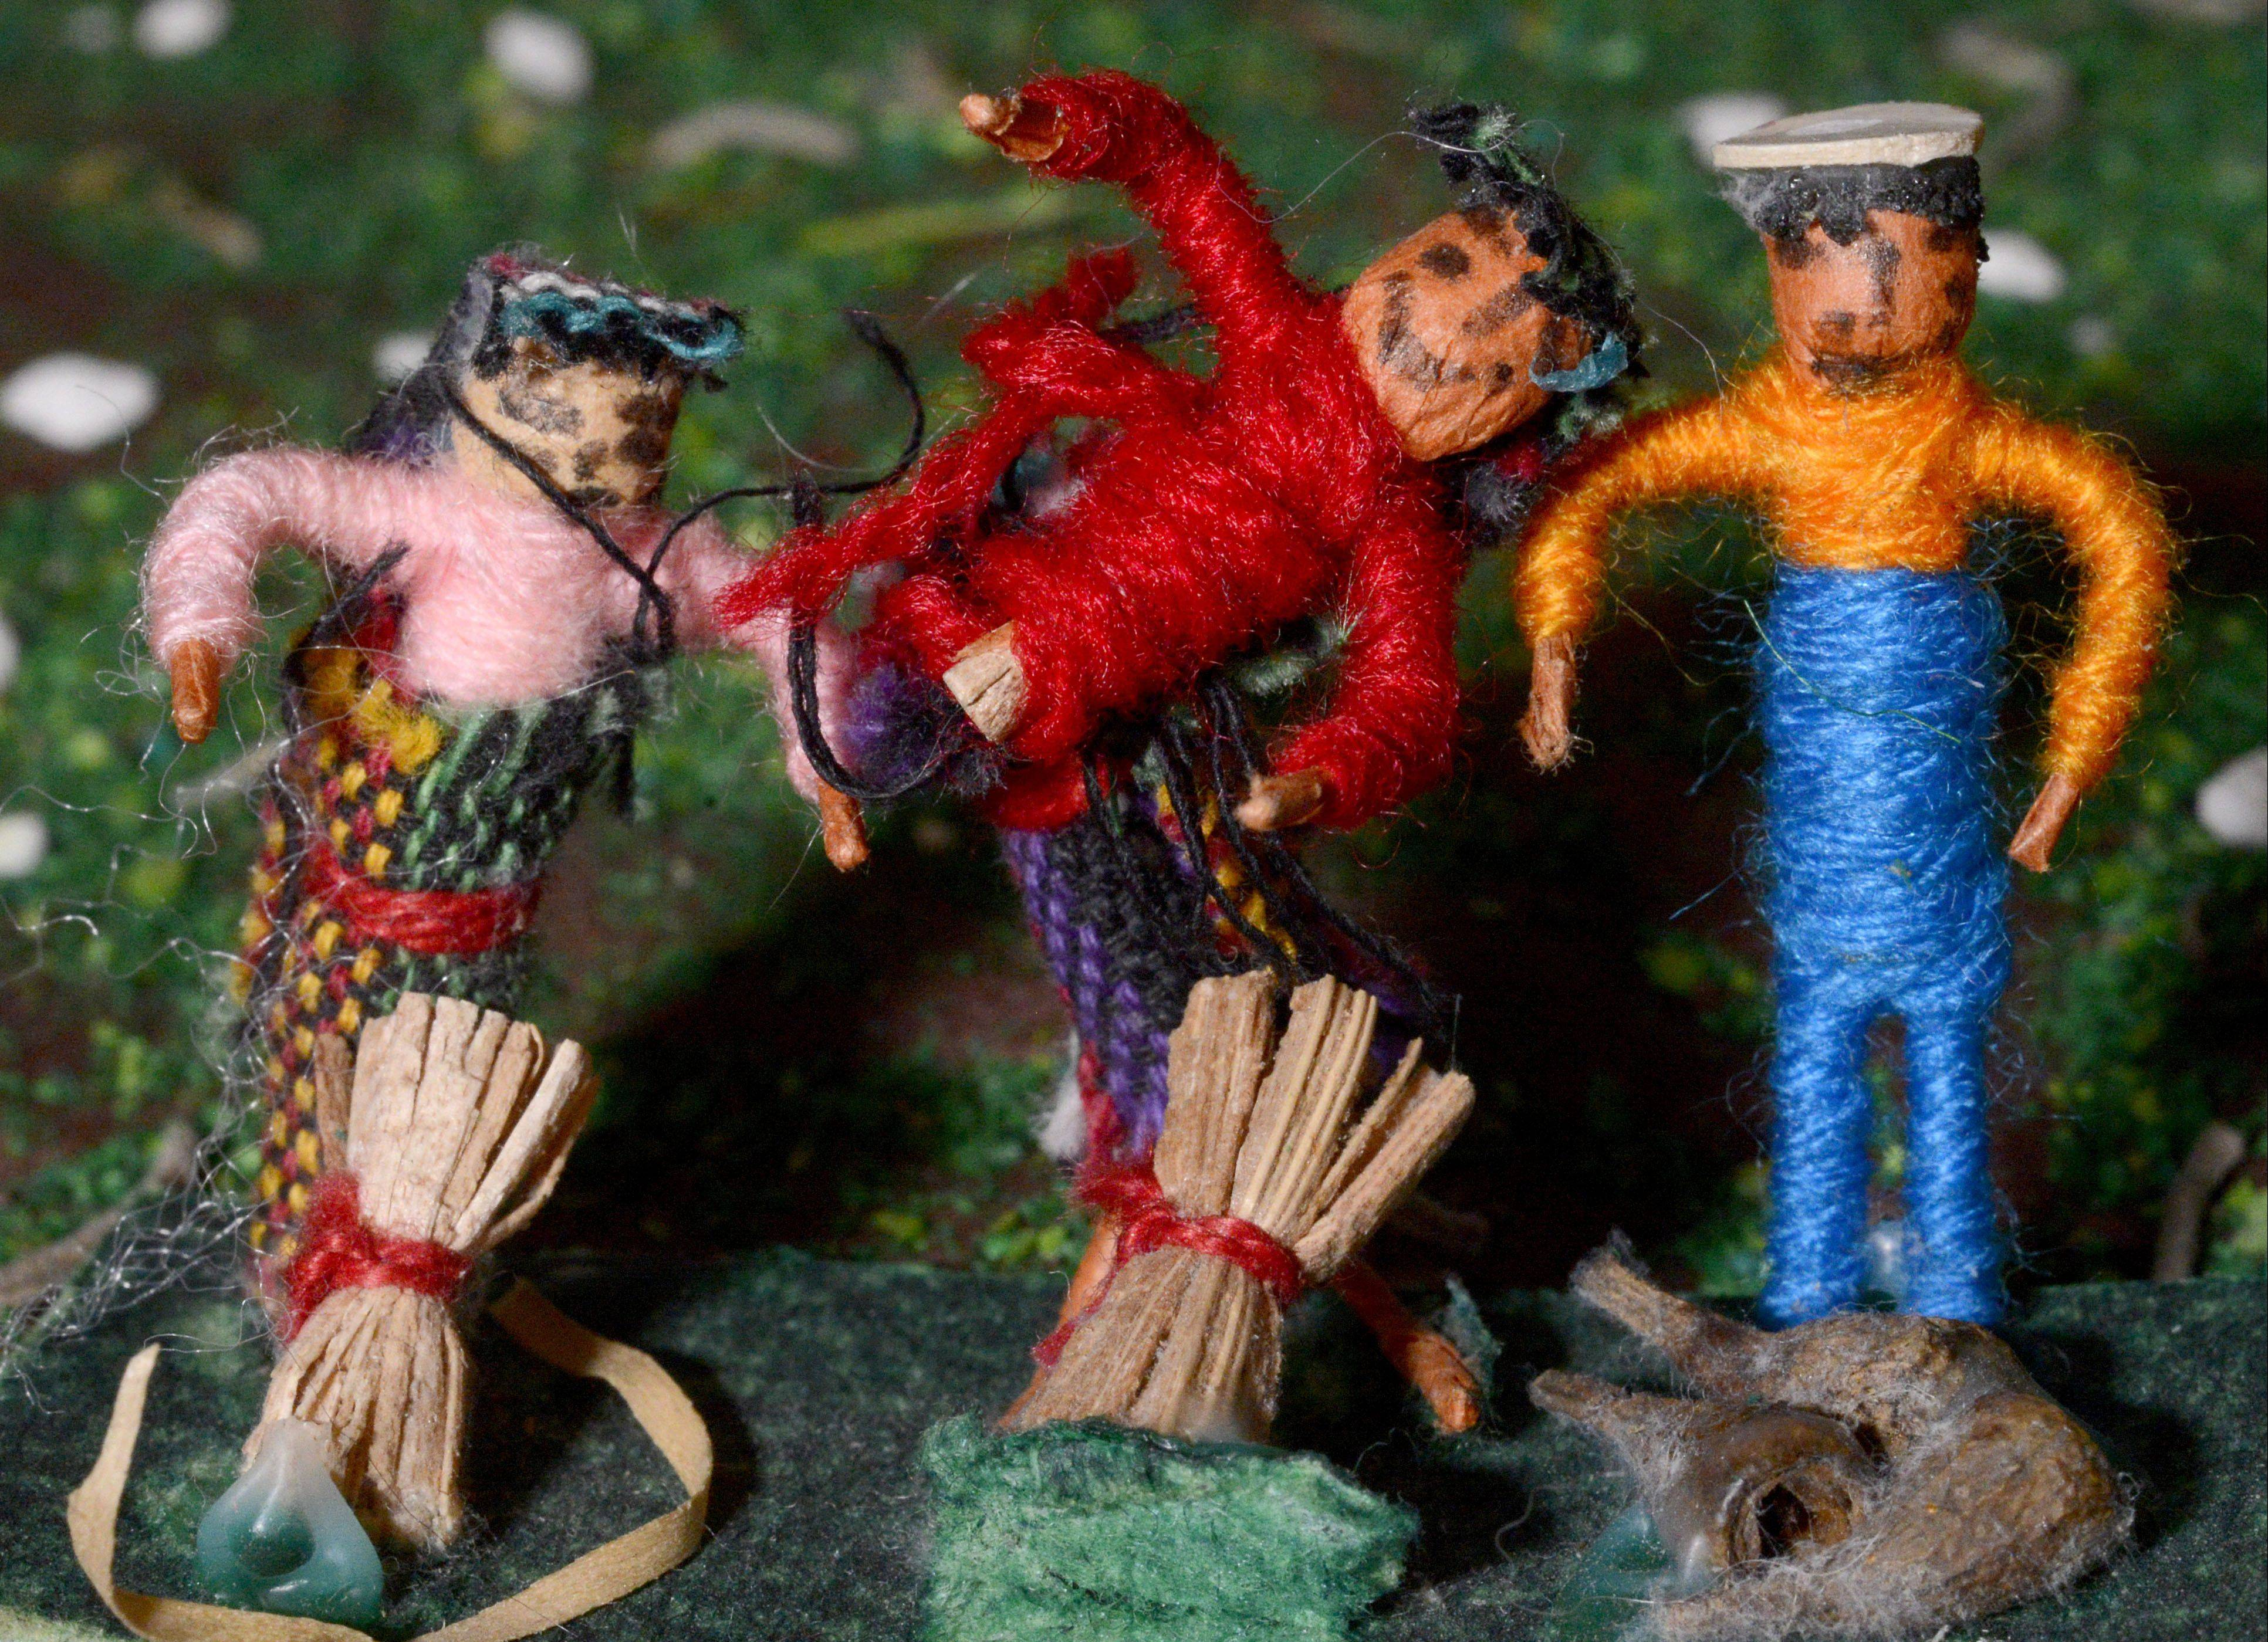 Part of the Guatemalan Christmas scene in the Touching on Traditions exhibit.